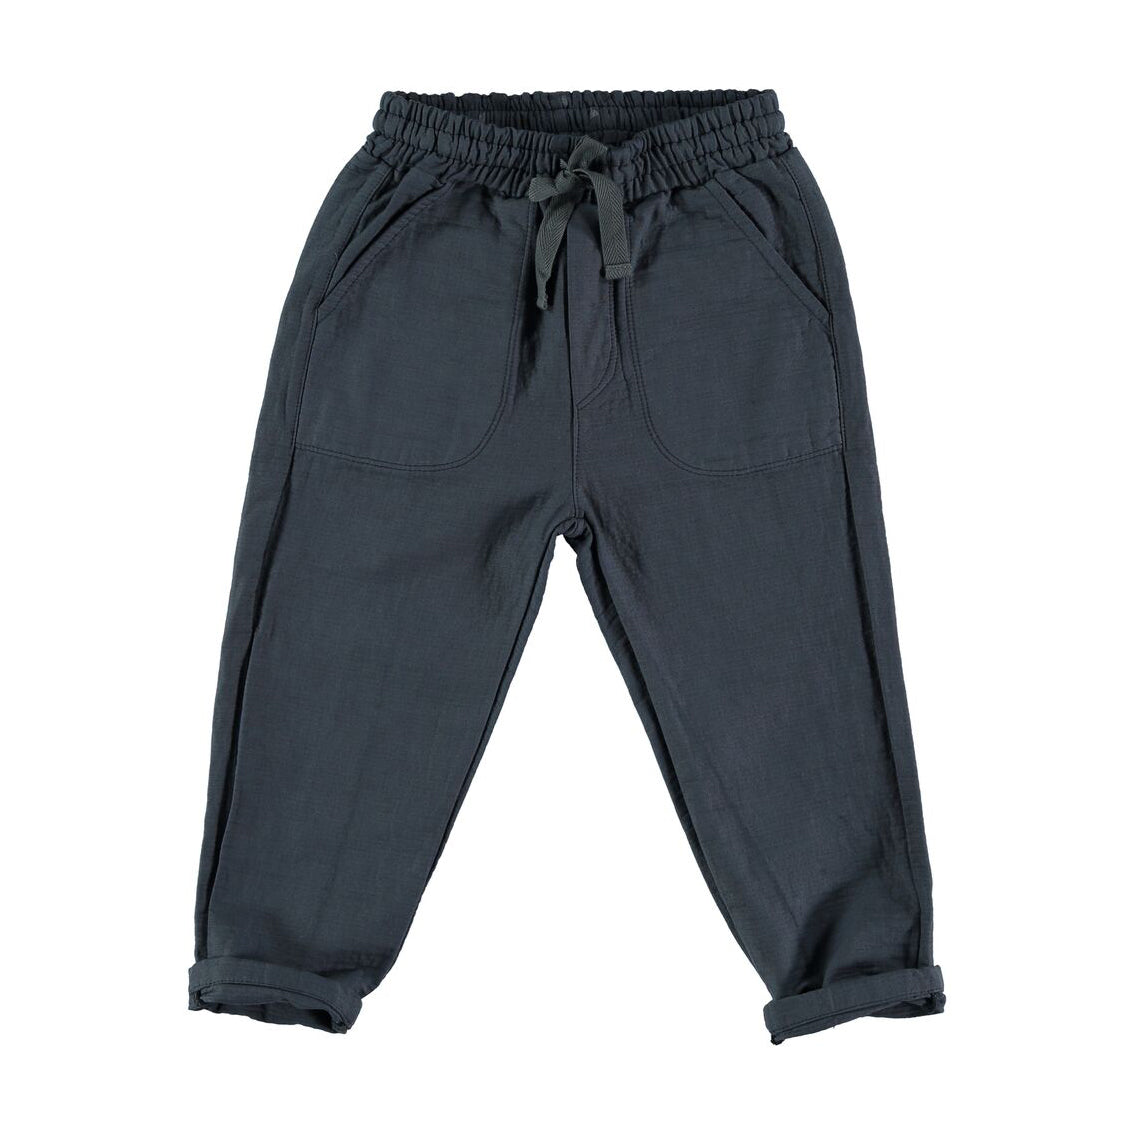 Designer Kids Fashion at Bloom Moda Online Children's Boutique - Buho Eric Casual Pants,  Pants